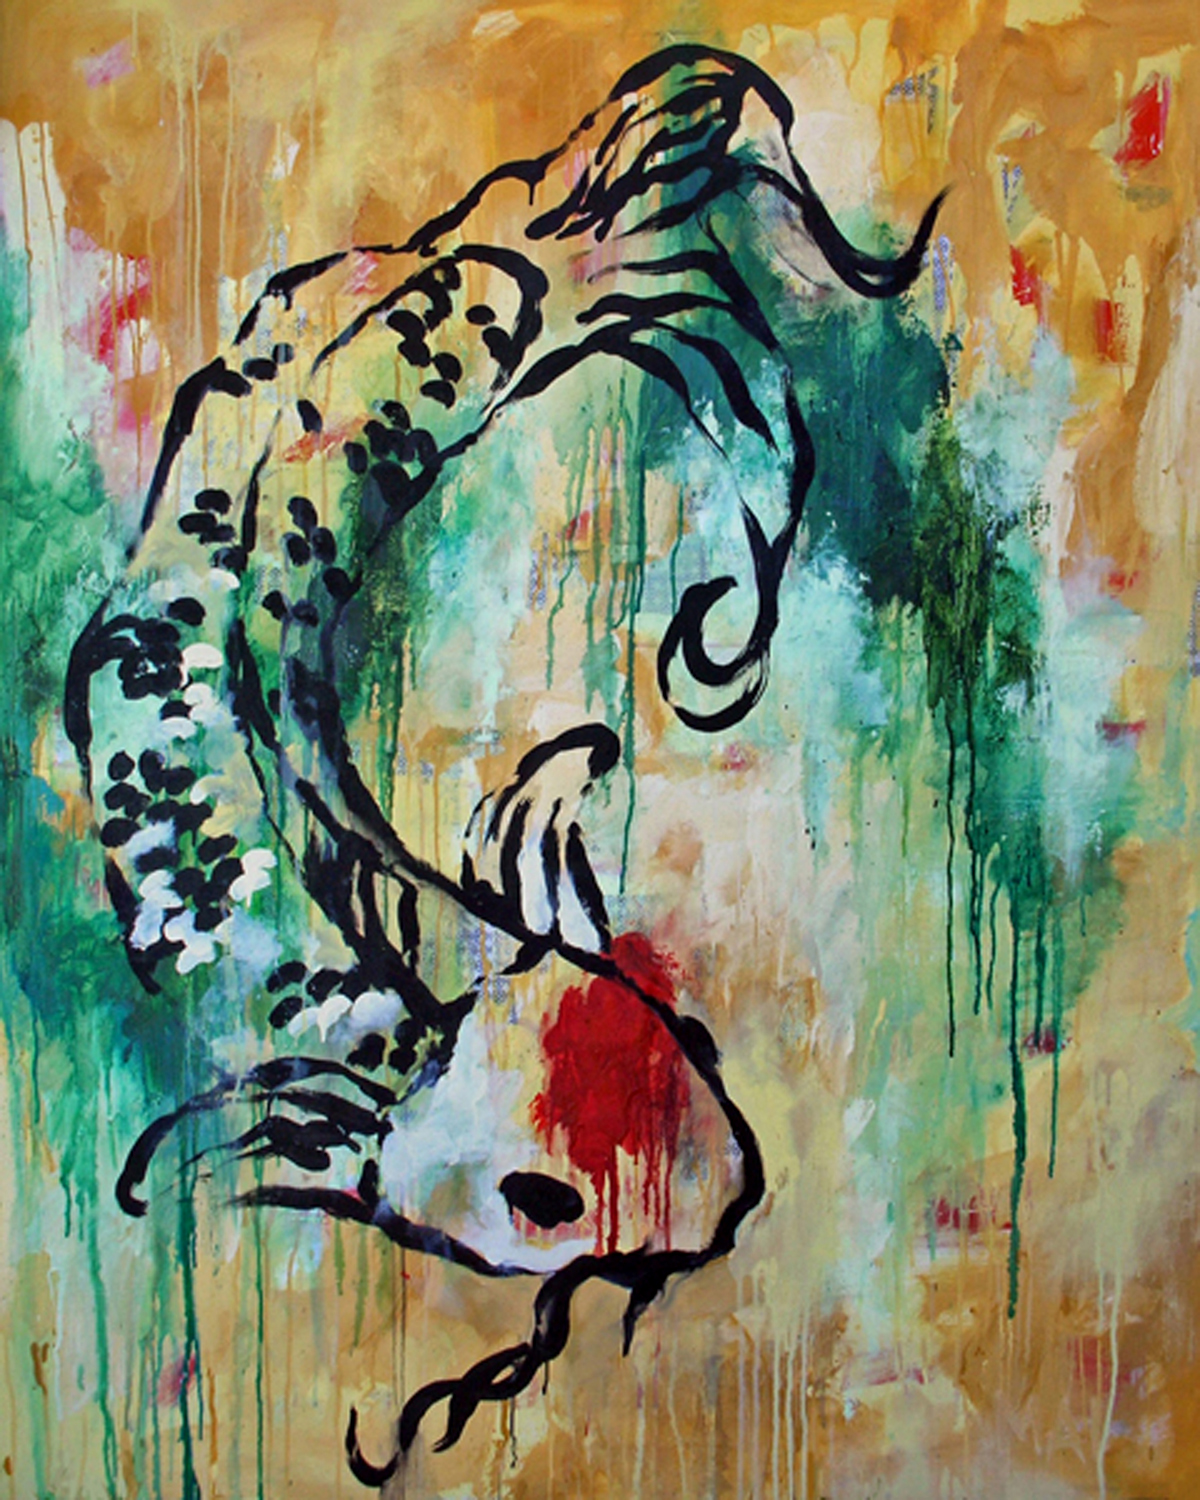 "We Find Strength  , 2008, mixed media on canvas, 60 x 48""  Because koi fish swim against the stream, they symbolize strength in times of adversity.  In times of struggle, I learn to trust my faith, and realize the Infinite resources that I have available to me - these resources that are ever ready to lend themselves to a purposeful will, and help me materialize my thoughts and desires into action, events and conditions which propel the resolve. Through the process, I develop the Faith that is the ""Substance of all things hoped for, the evidence of things not seen"", providing me with the strength to overcome all obstacles that may appear in my path."